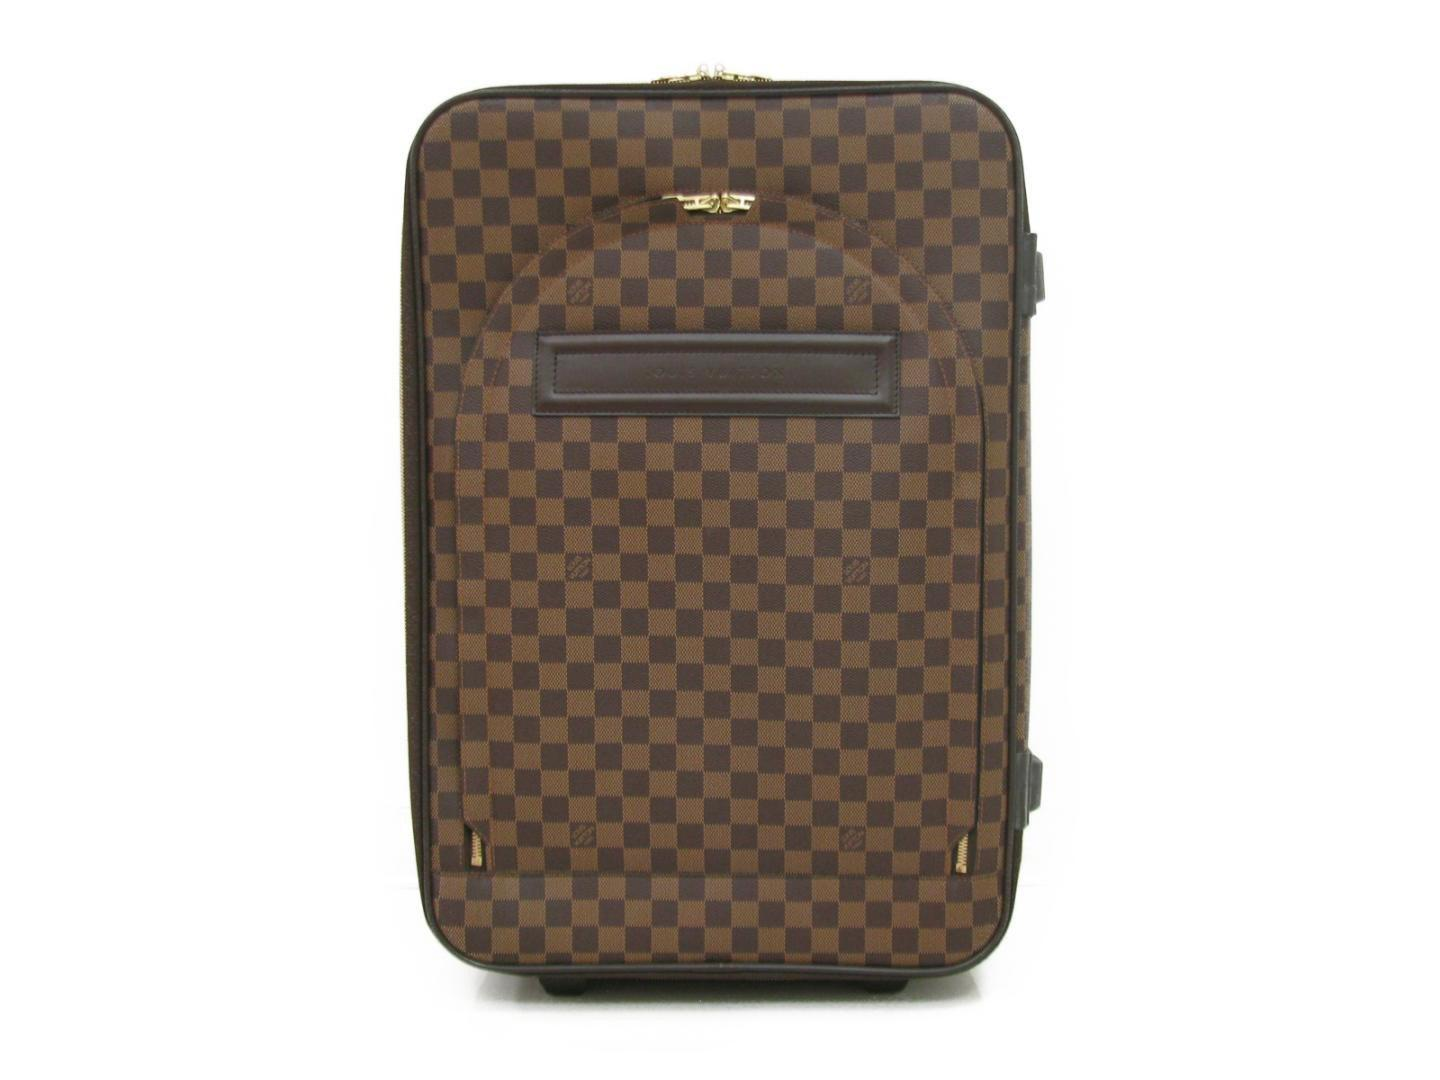 31336bfe7354 Lyst - Louis Vuitton Pegase 60 Damier Travel Suitcase Carry On ...